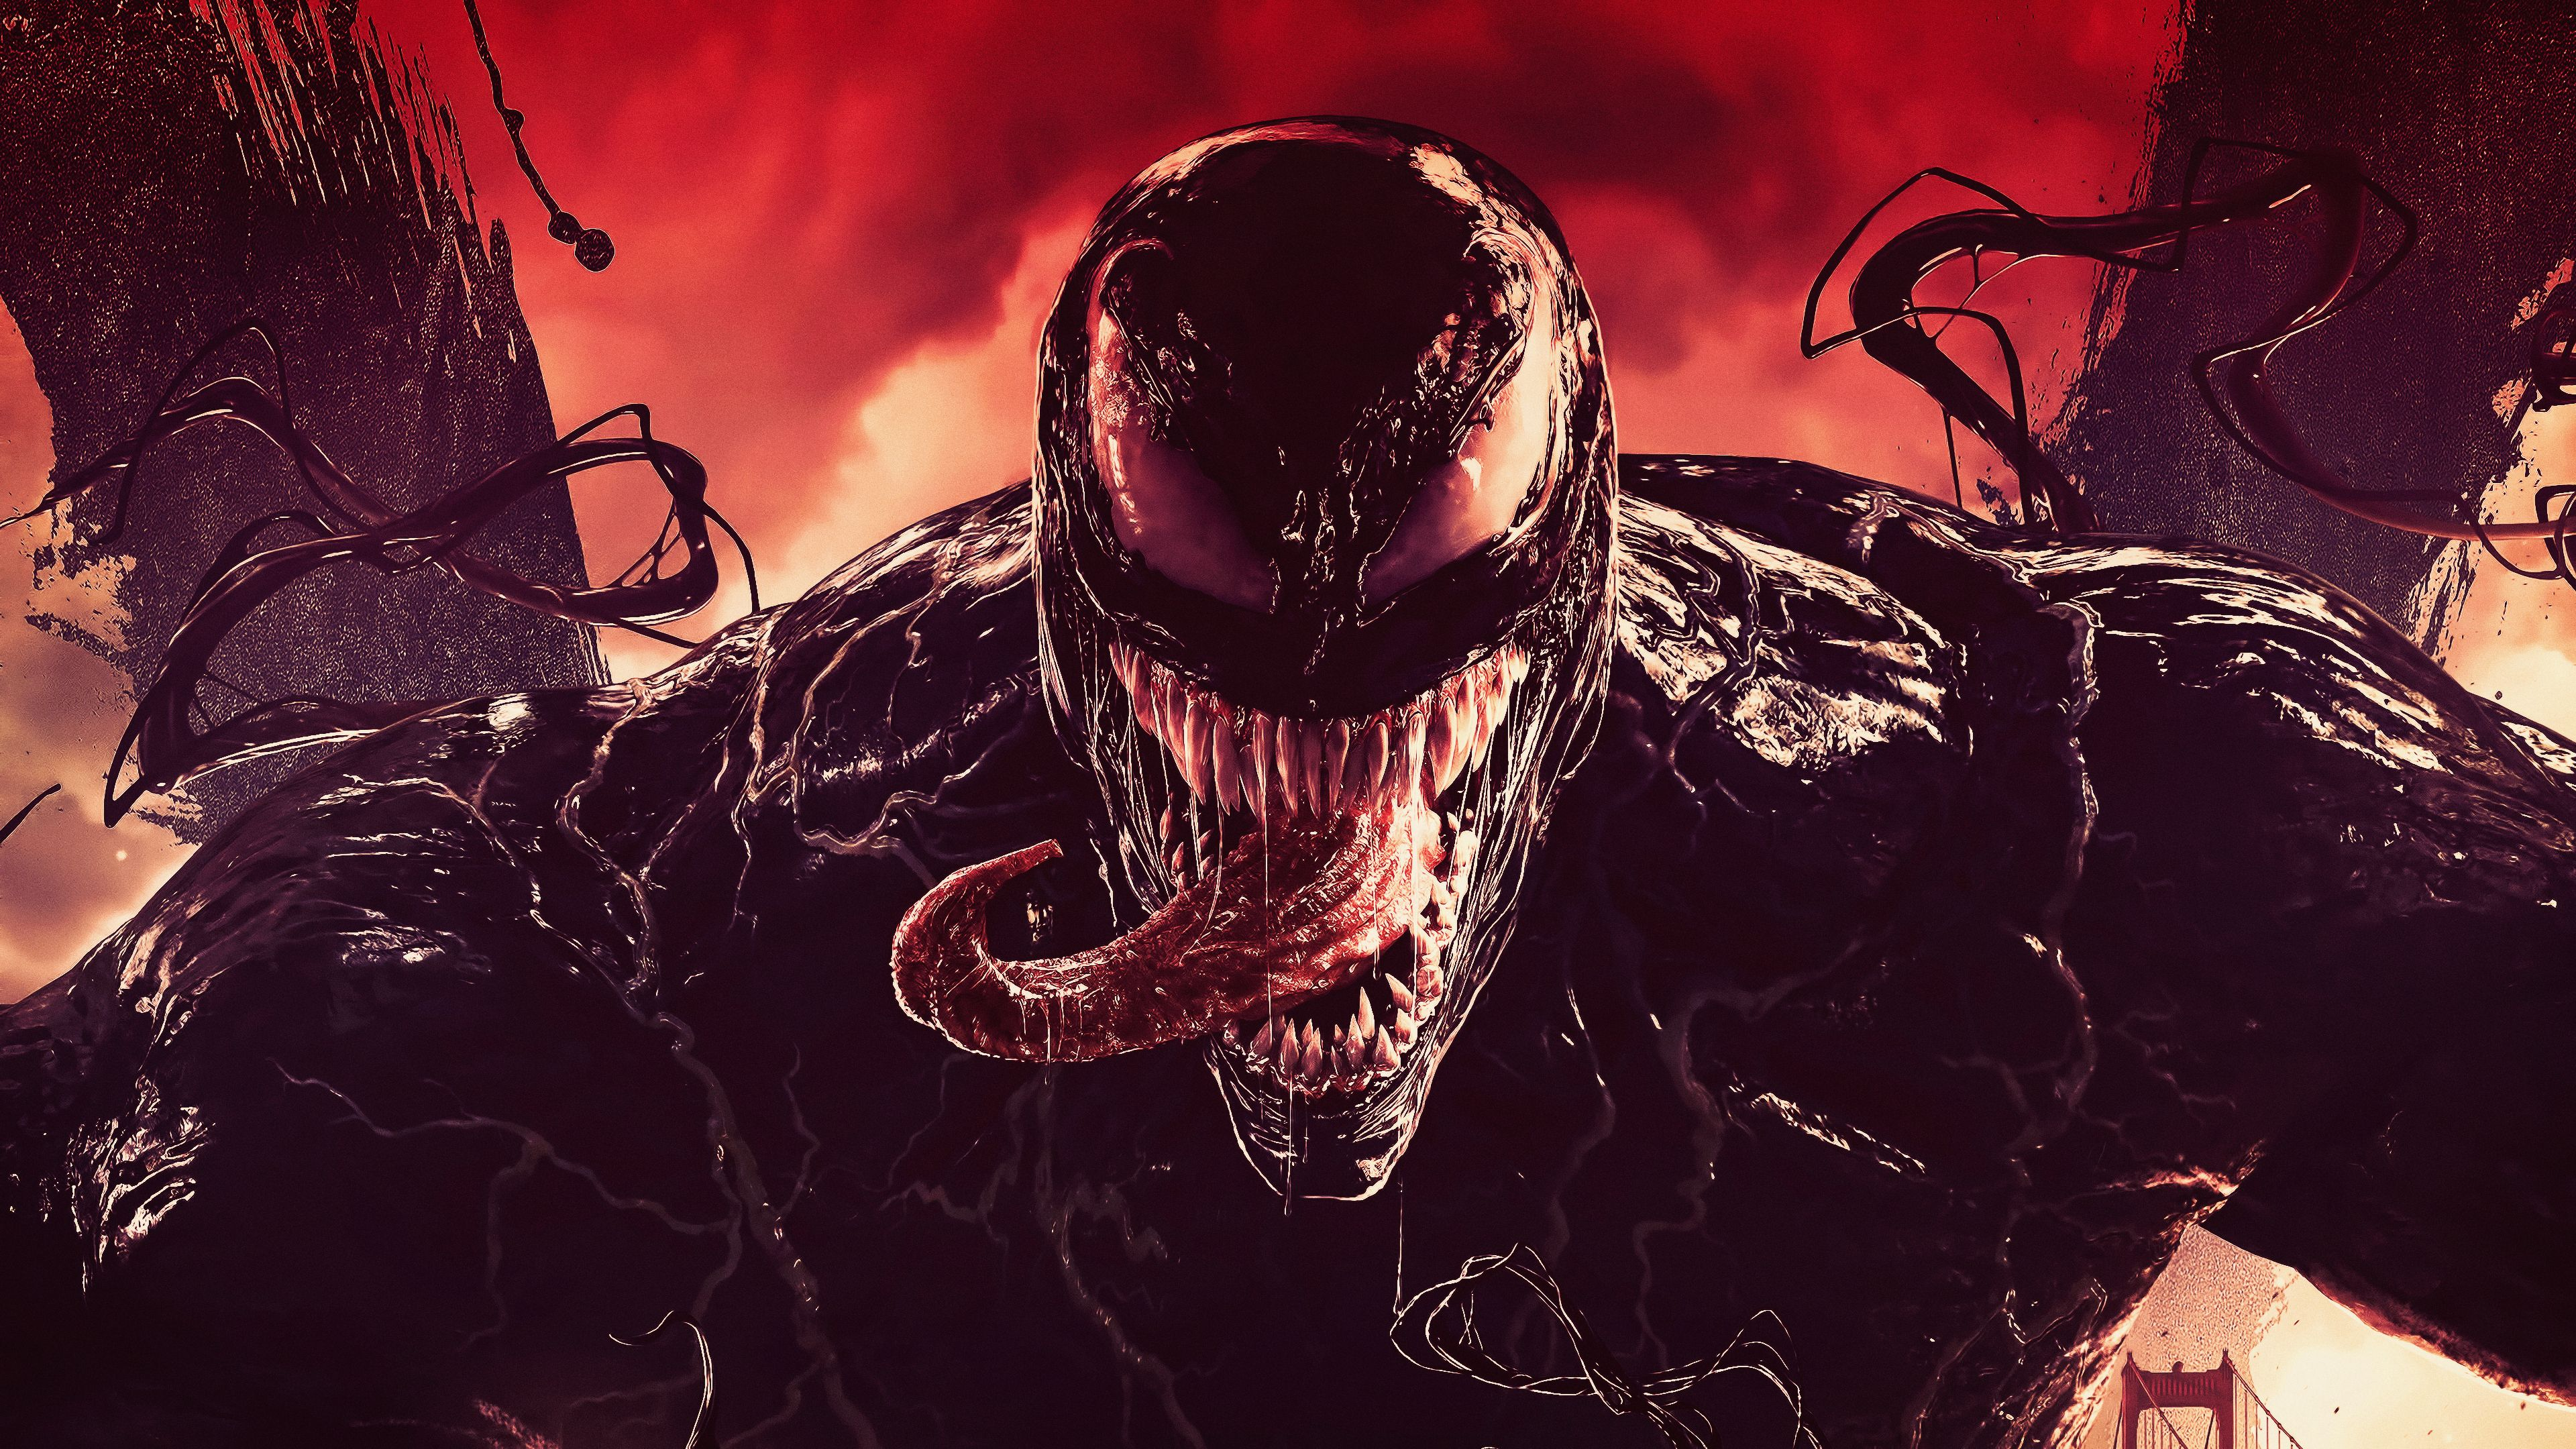 General 3840x2160 Venom Comics Artwork Saliva Marvel Comics Horror Transformation Carnage Red Digital Art Spider Tongue Digital Art Fantasy Art Comics Artwork